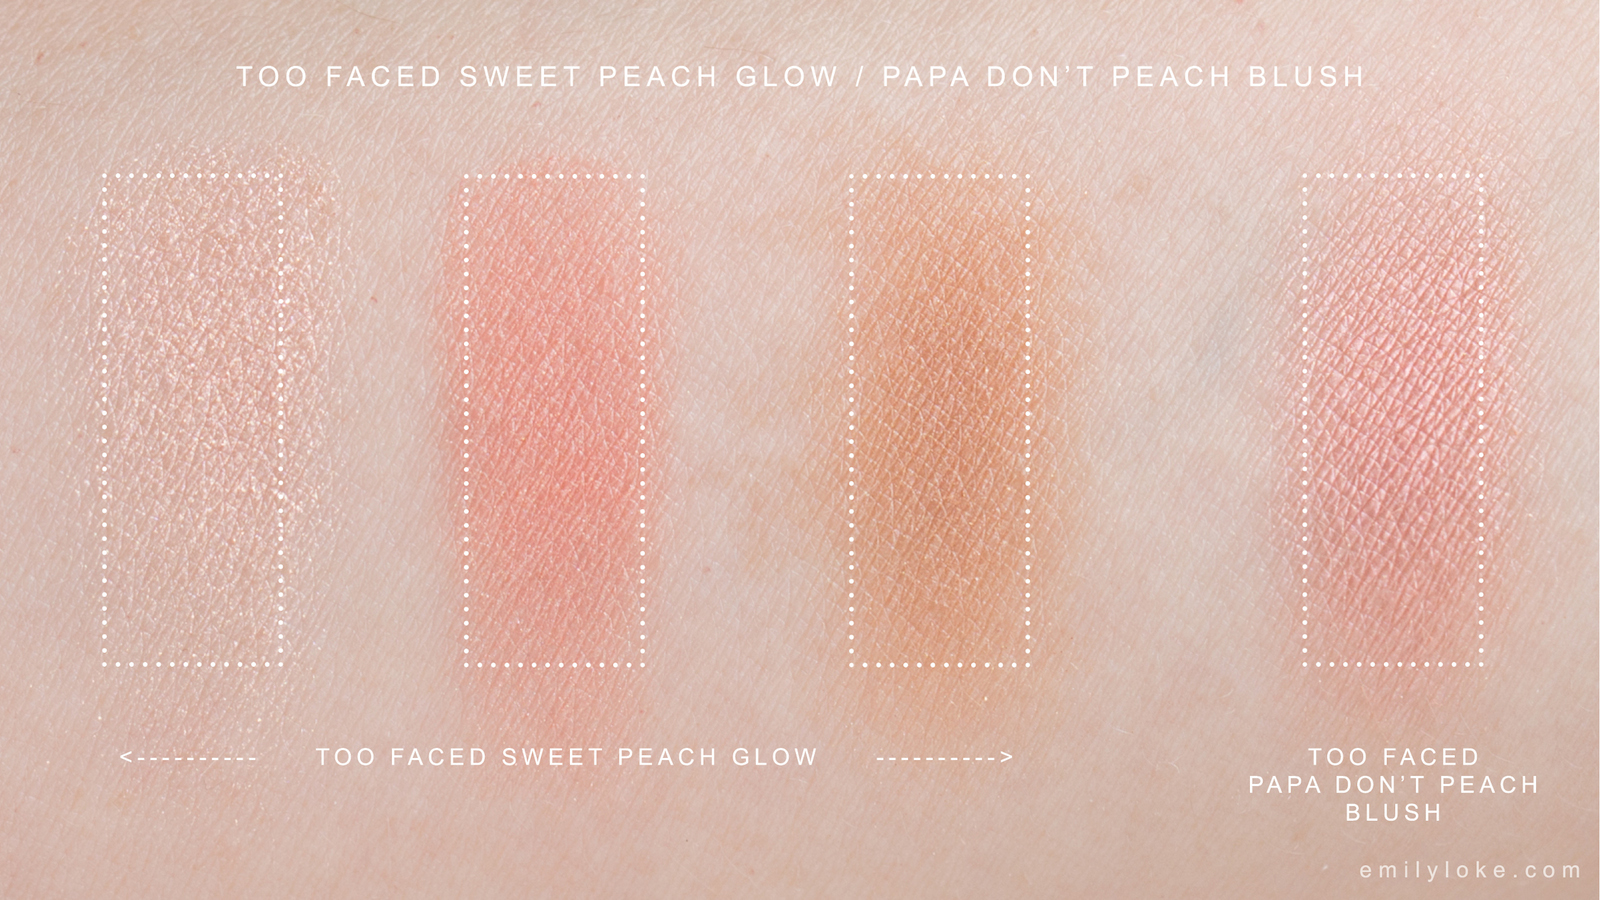 Too Faced Sweet Peach Glow Papa Don't Peach swatches